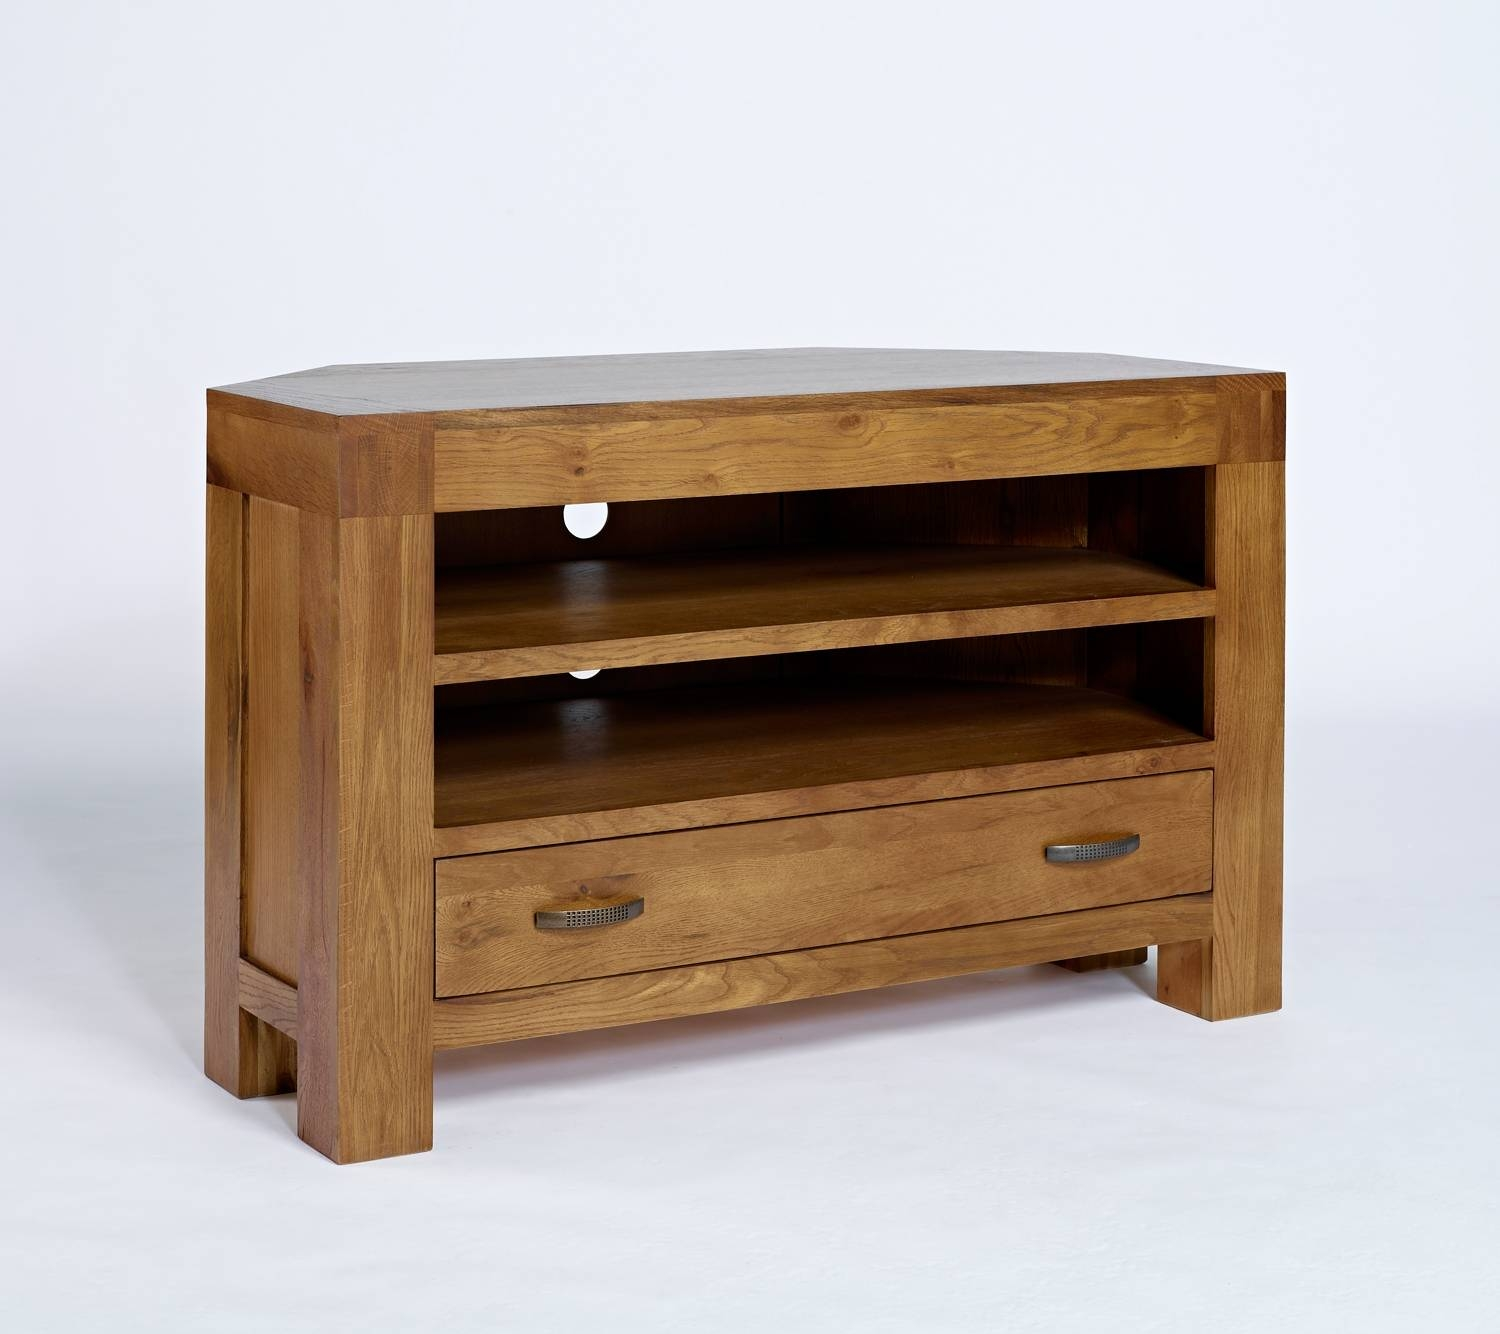 Santana Reclaimed Oak Corner Tv Unit. Shop Online Today with regard to Rustic Corner Tv Cabinets (Image 11 of 15)